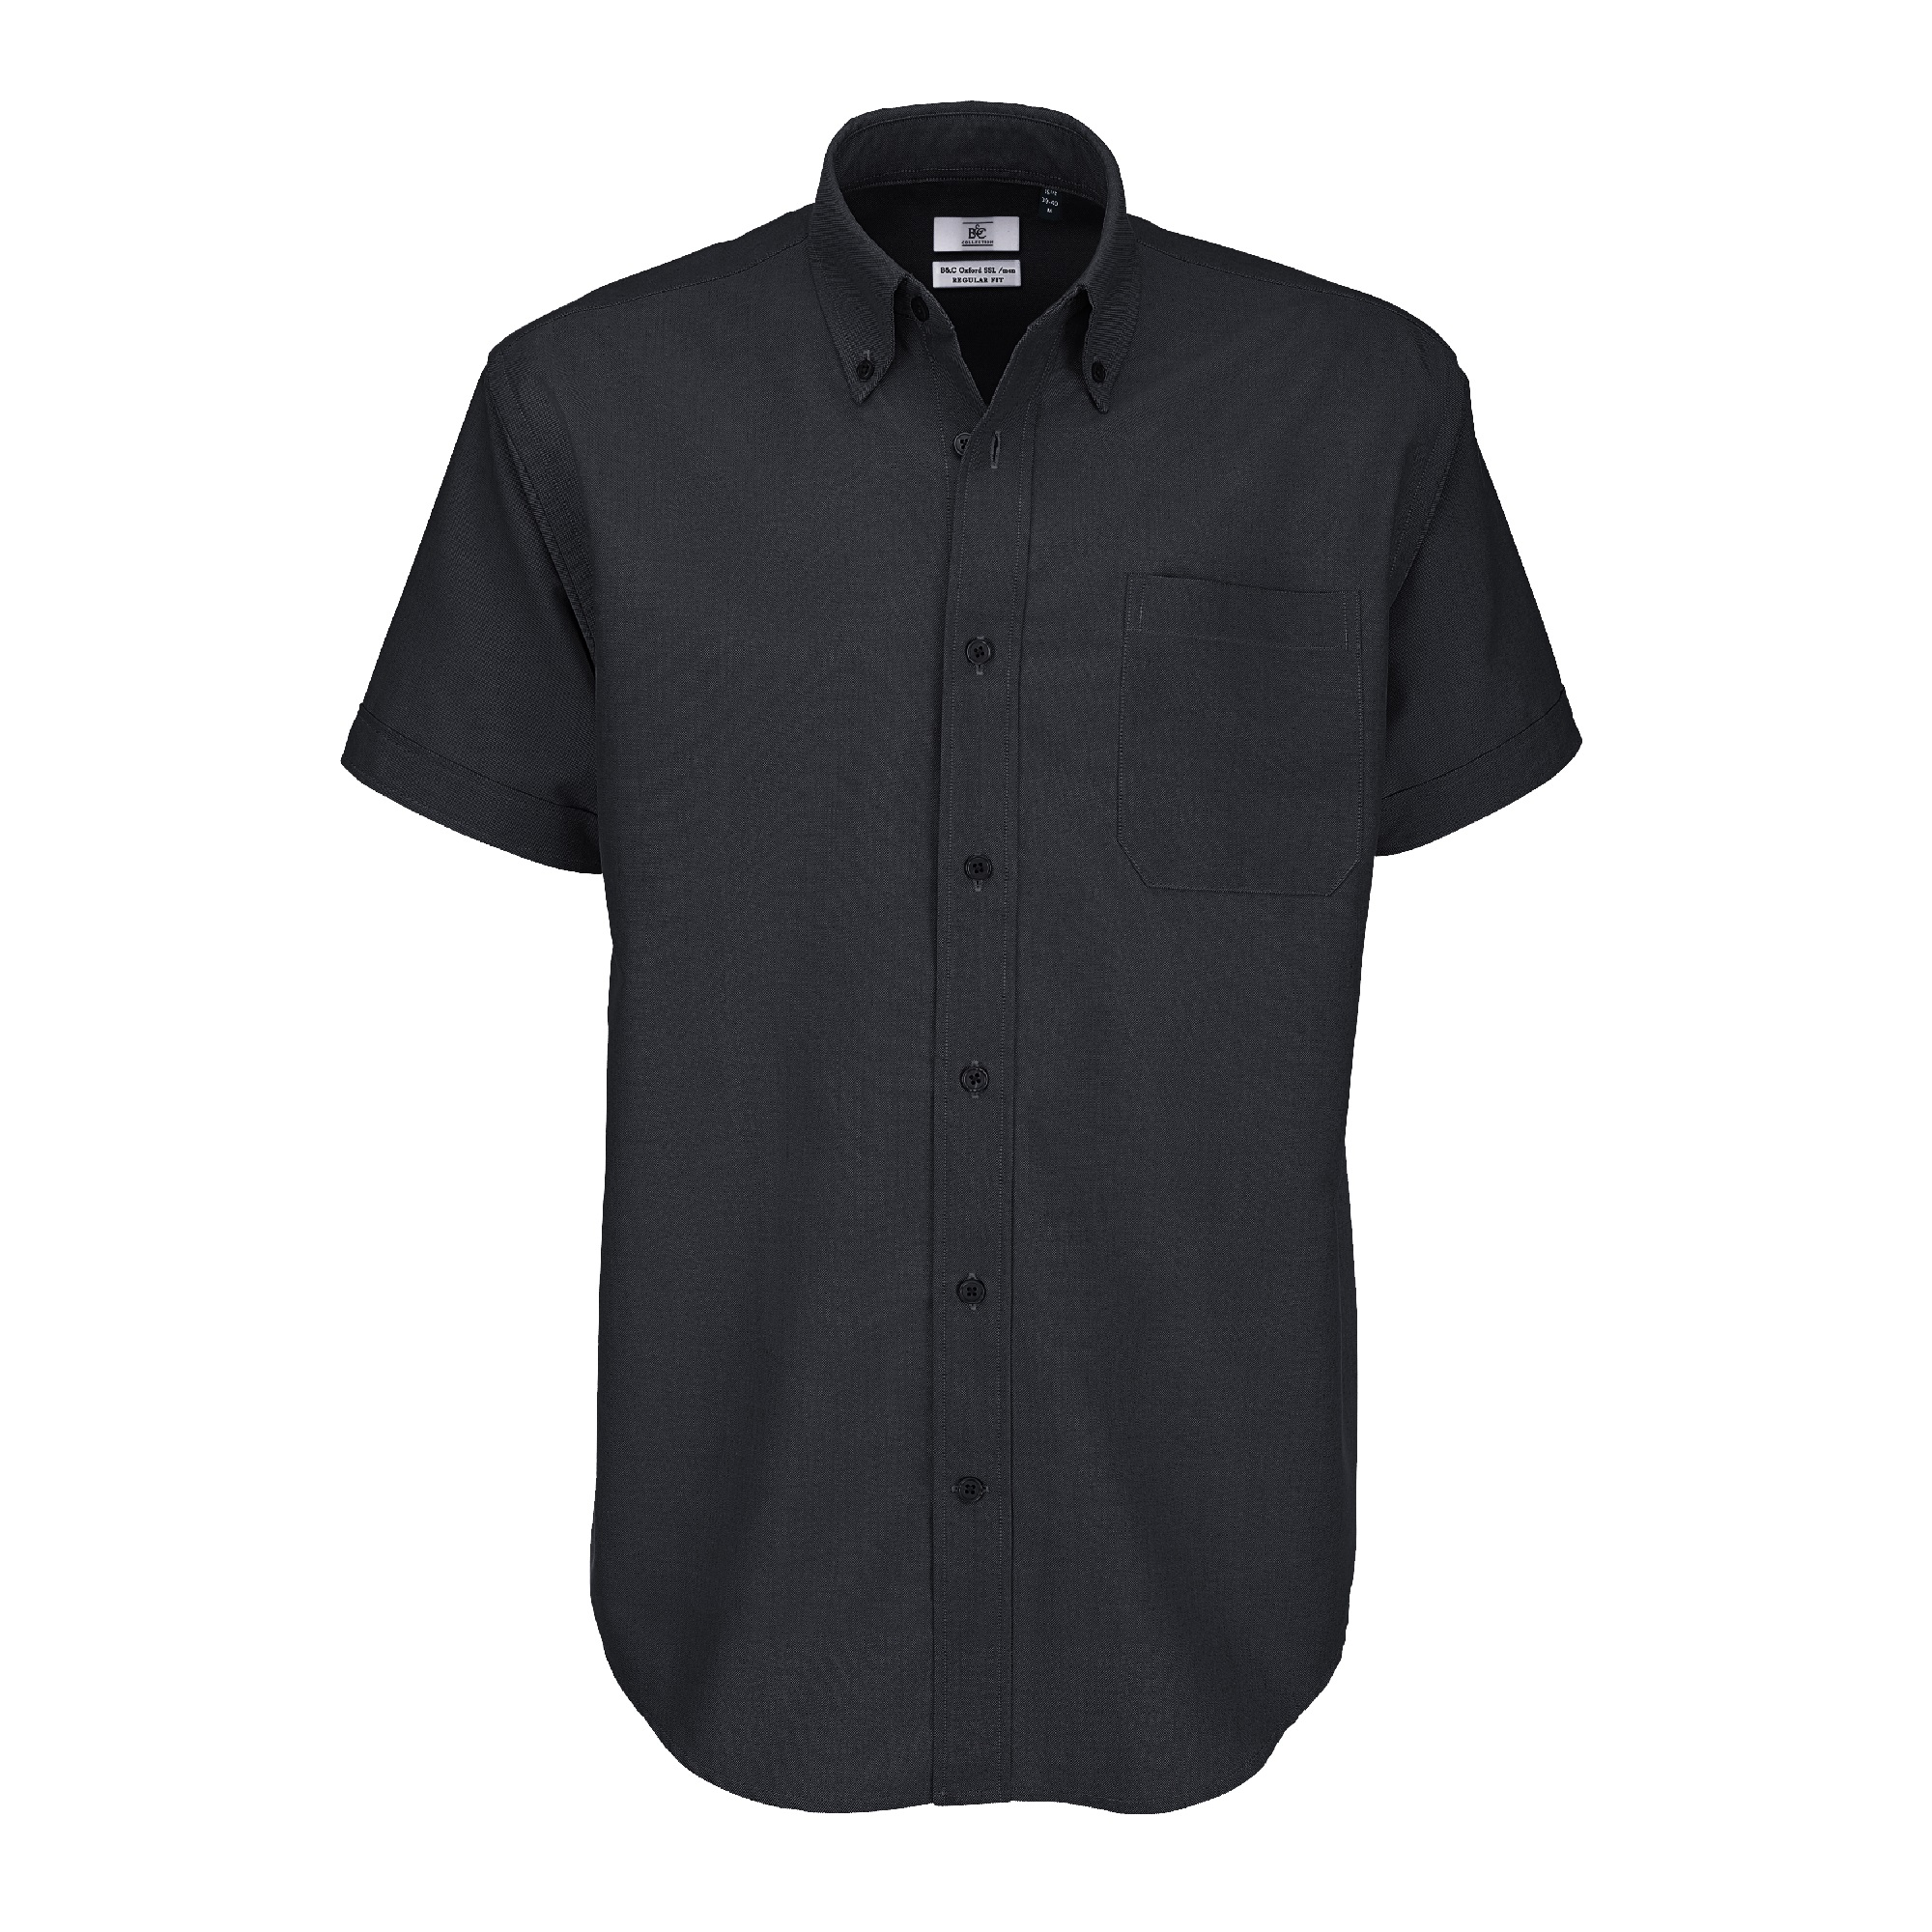 Ba708 oxford short sleeve men gdb manufacturing for Mens black short sleeve dress shirt